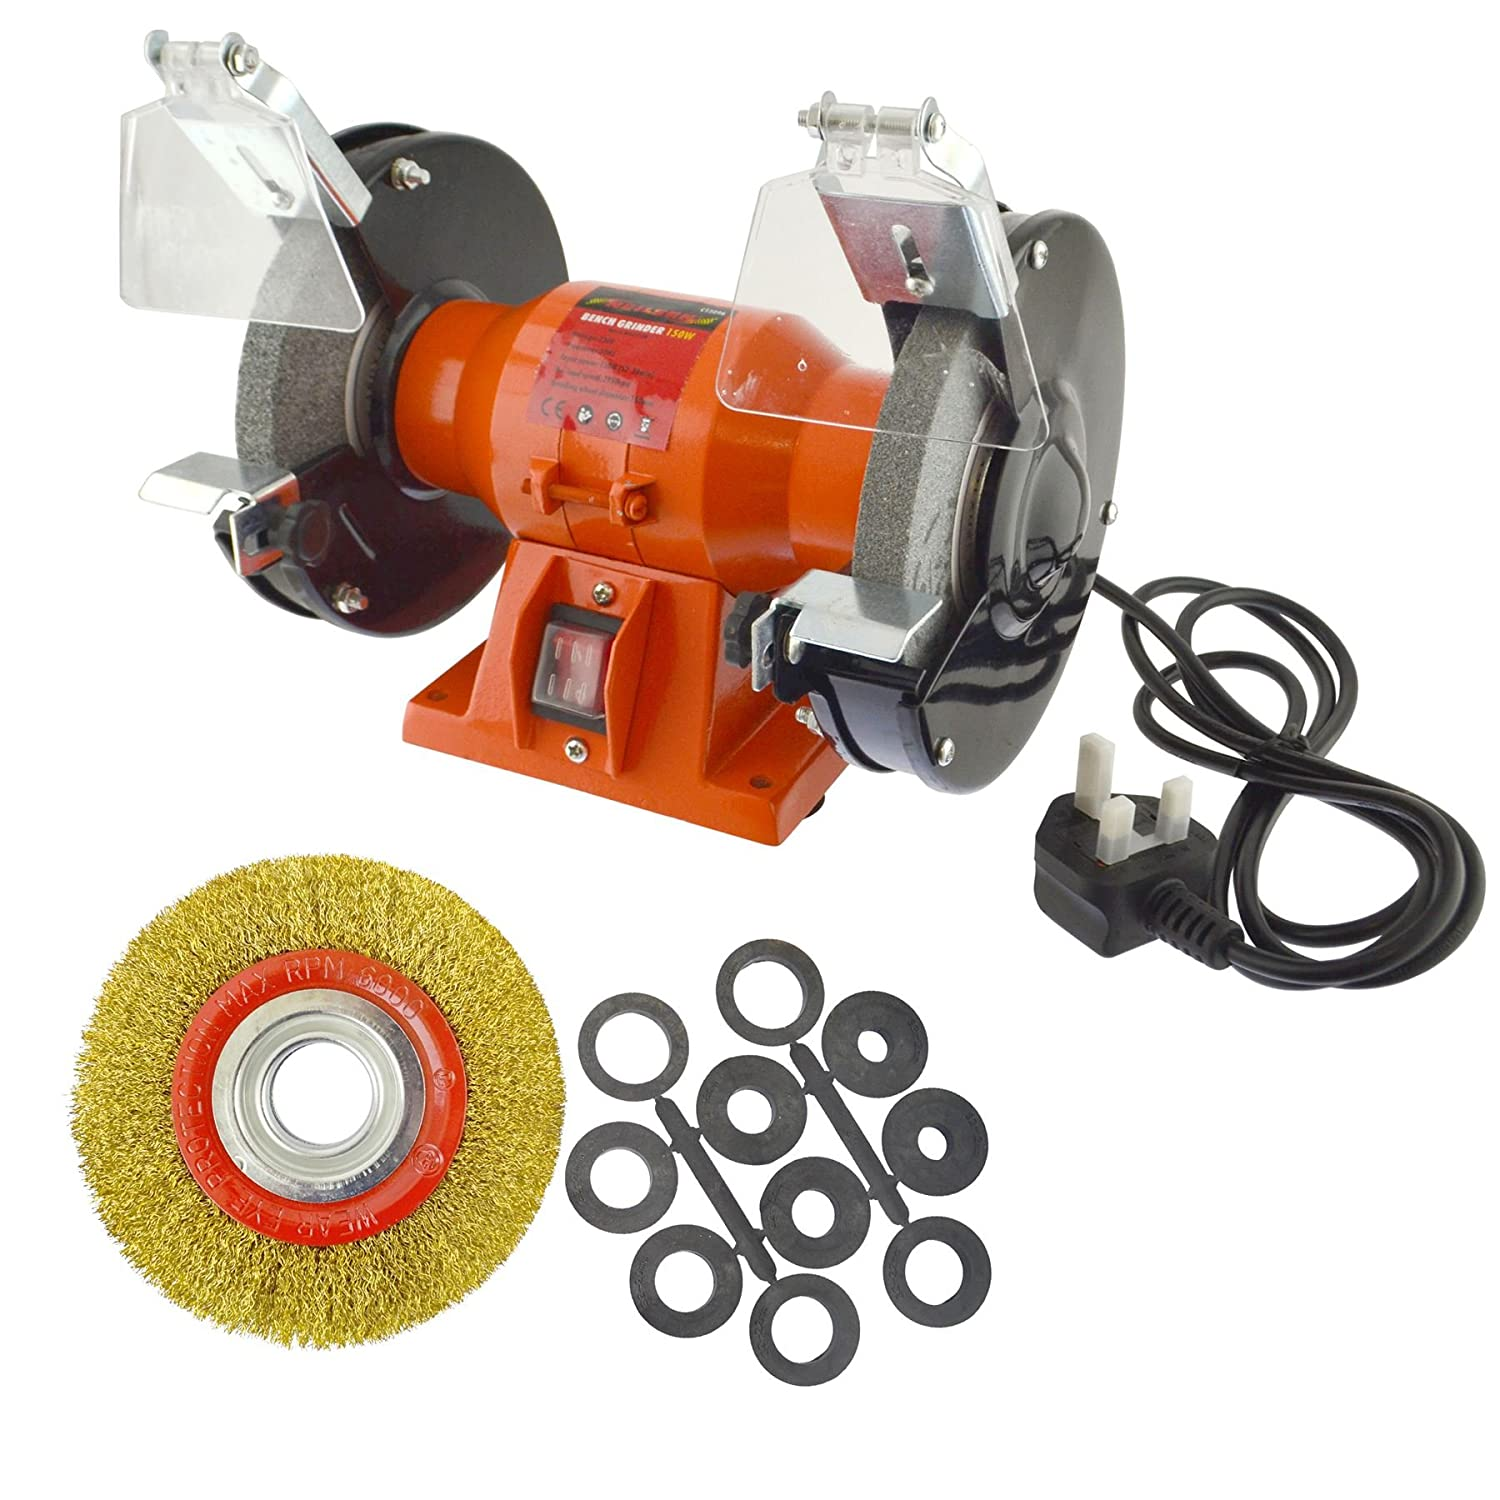 Outstanding Ab Tools Neilsen 150Mm Electric Workshop Bench Grinder 150W Grinding Polishing And 6 Wire Wheel Caraccident5 Cool Chair Designs And Ideas Caraccident5Info